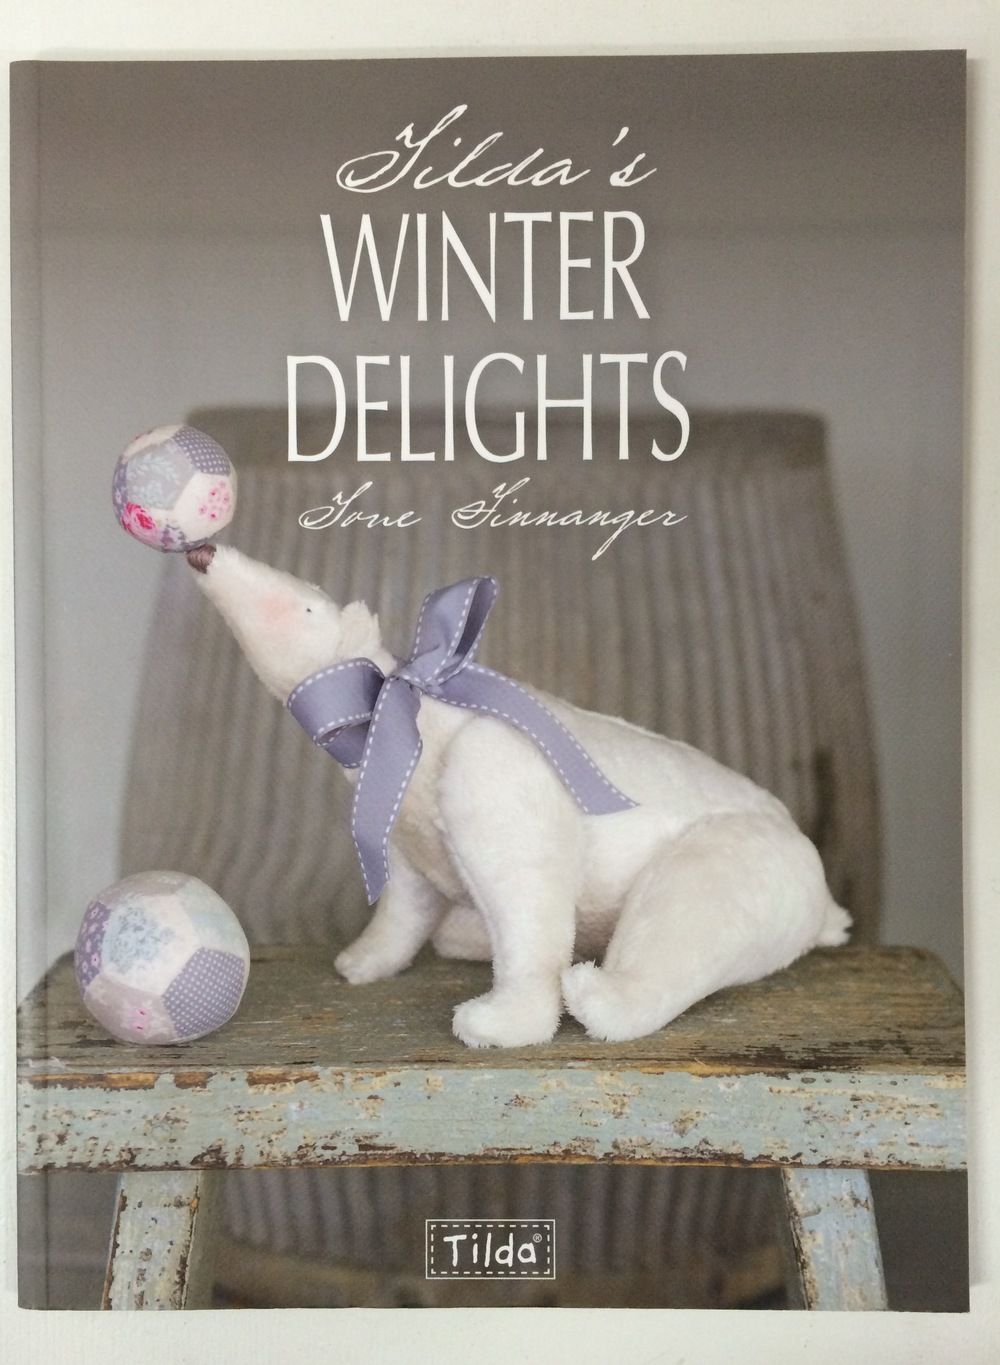 Tilda's Winter Delights book is full of interesting projects.